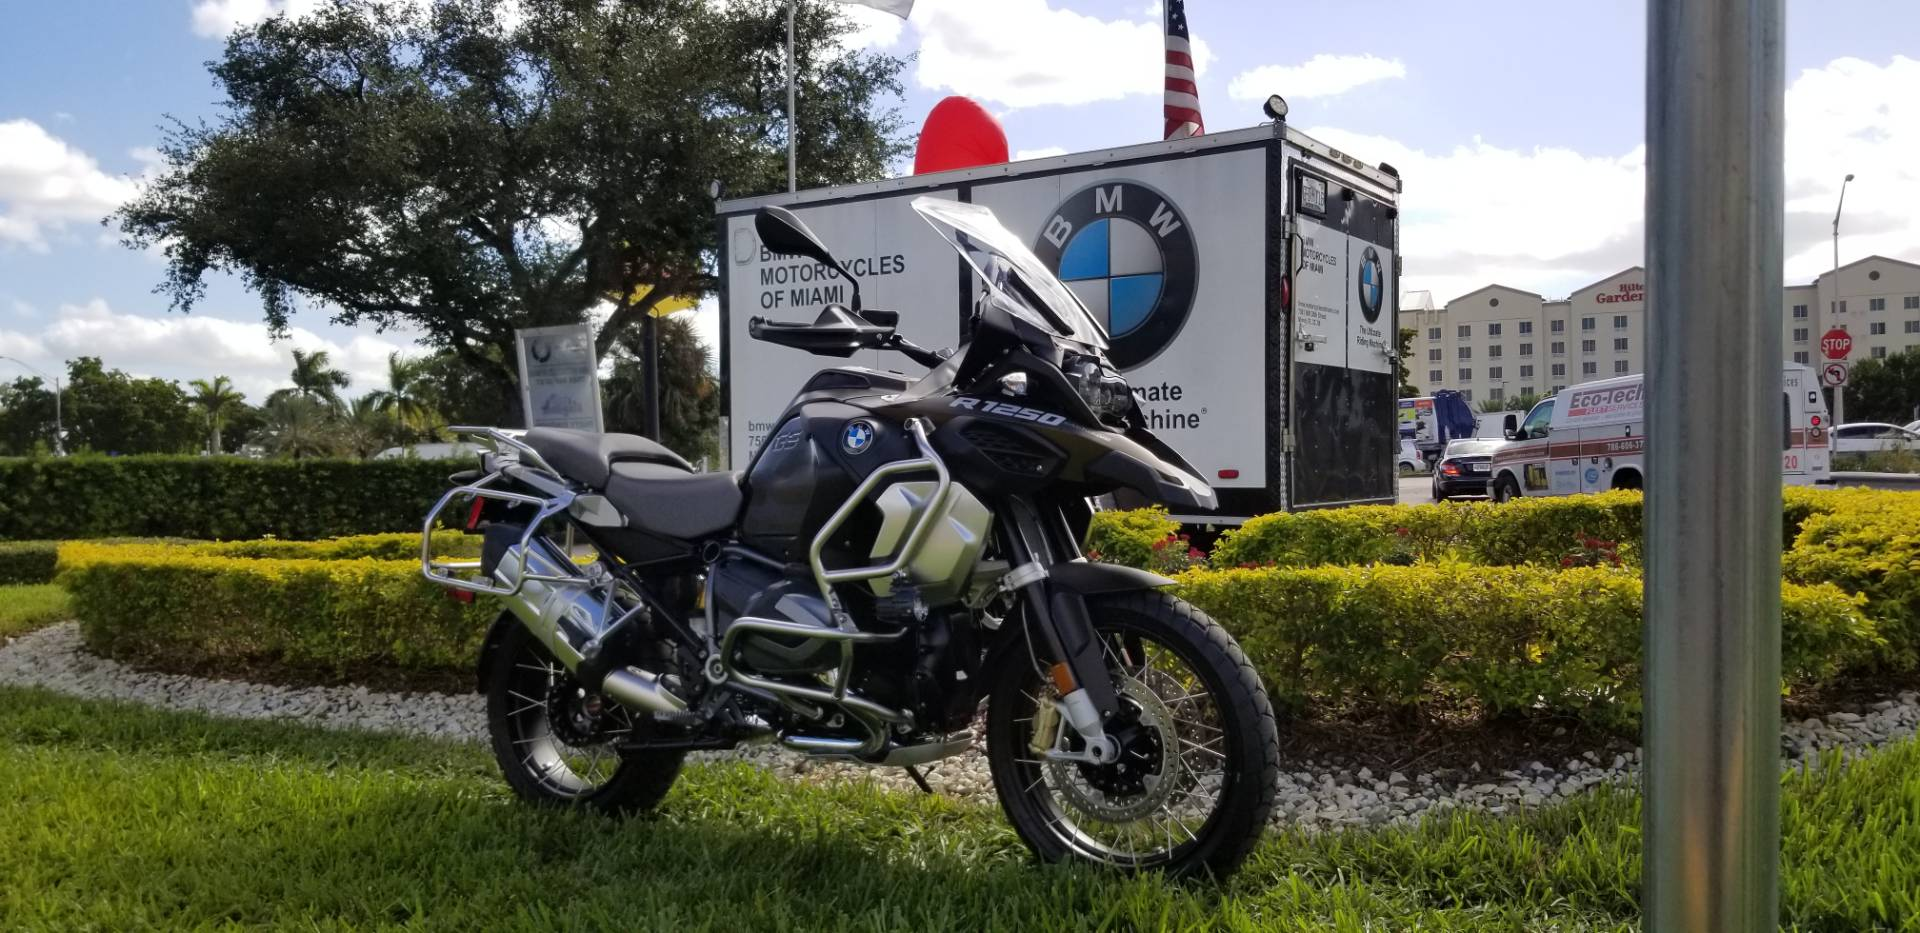 New 2019 BMW R 1250 GSA for sale, BMW for sale R 1250GSA, BMW Motorcycle R1250GSA, new BMW 1250GS Adventure, R1250GSAdventure, BMW Adventure, BMW Motorcycles of Miami, Motorcycles of Miami - Photo 31